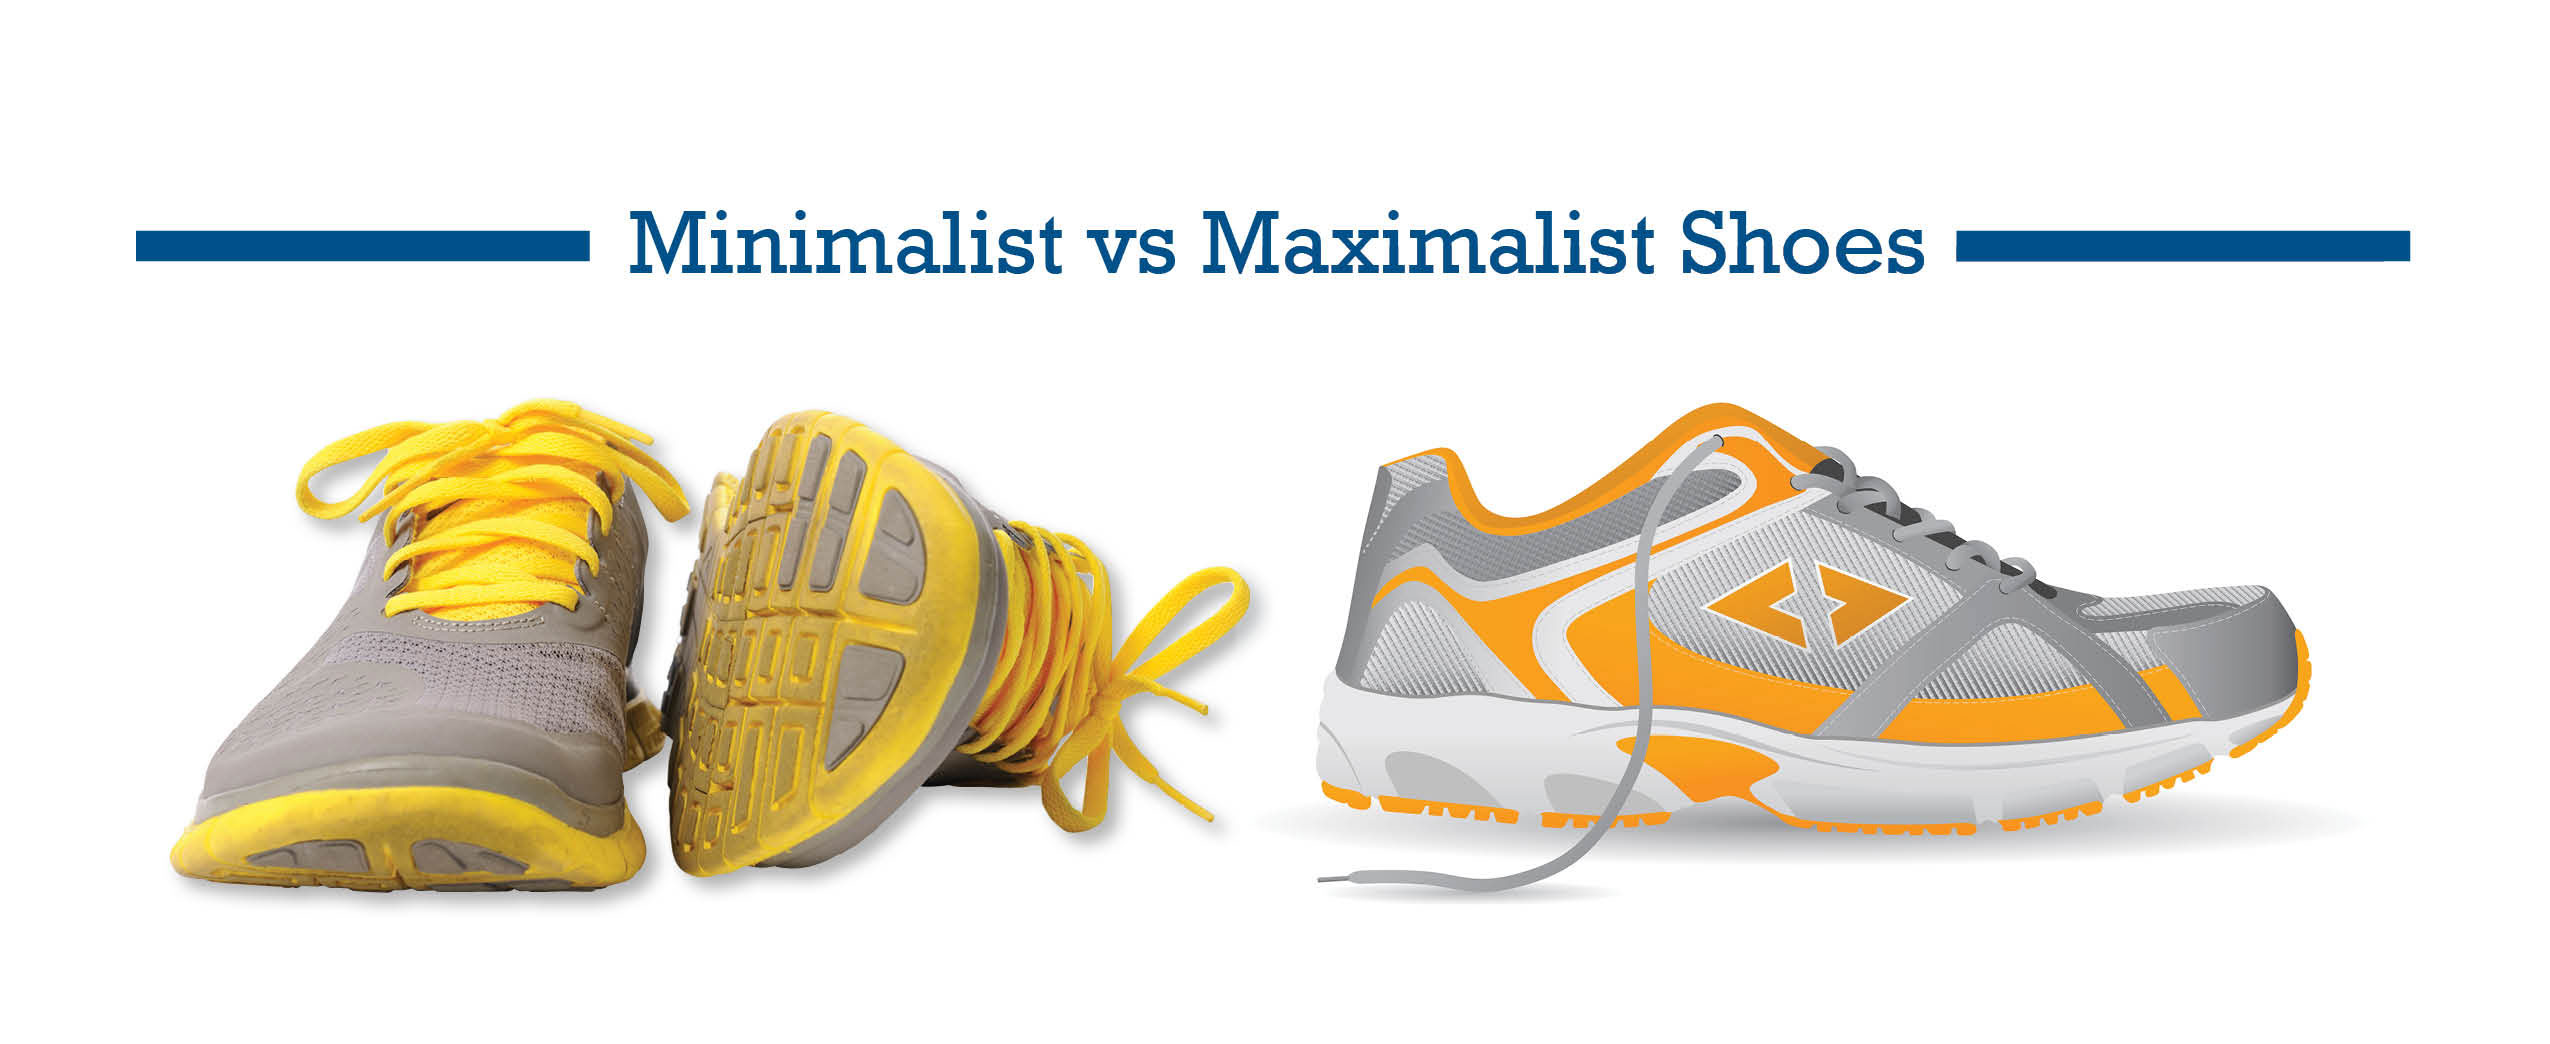 Minimalist Shoes vs Maximalist Shoes